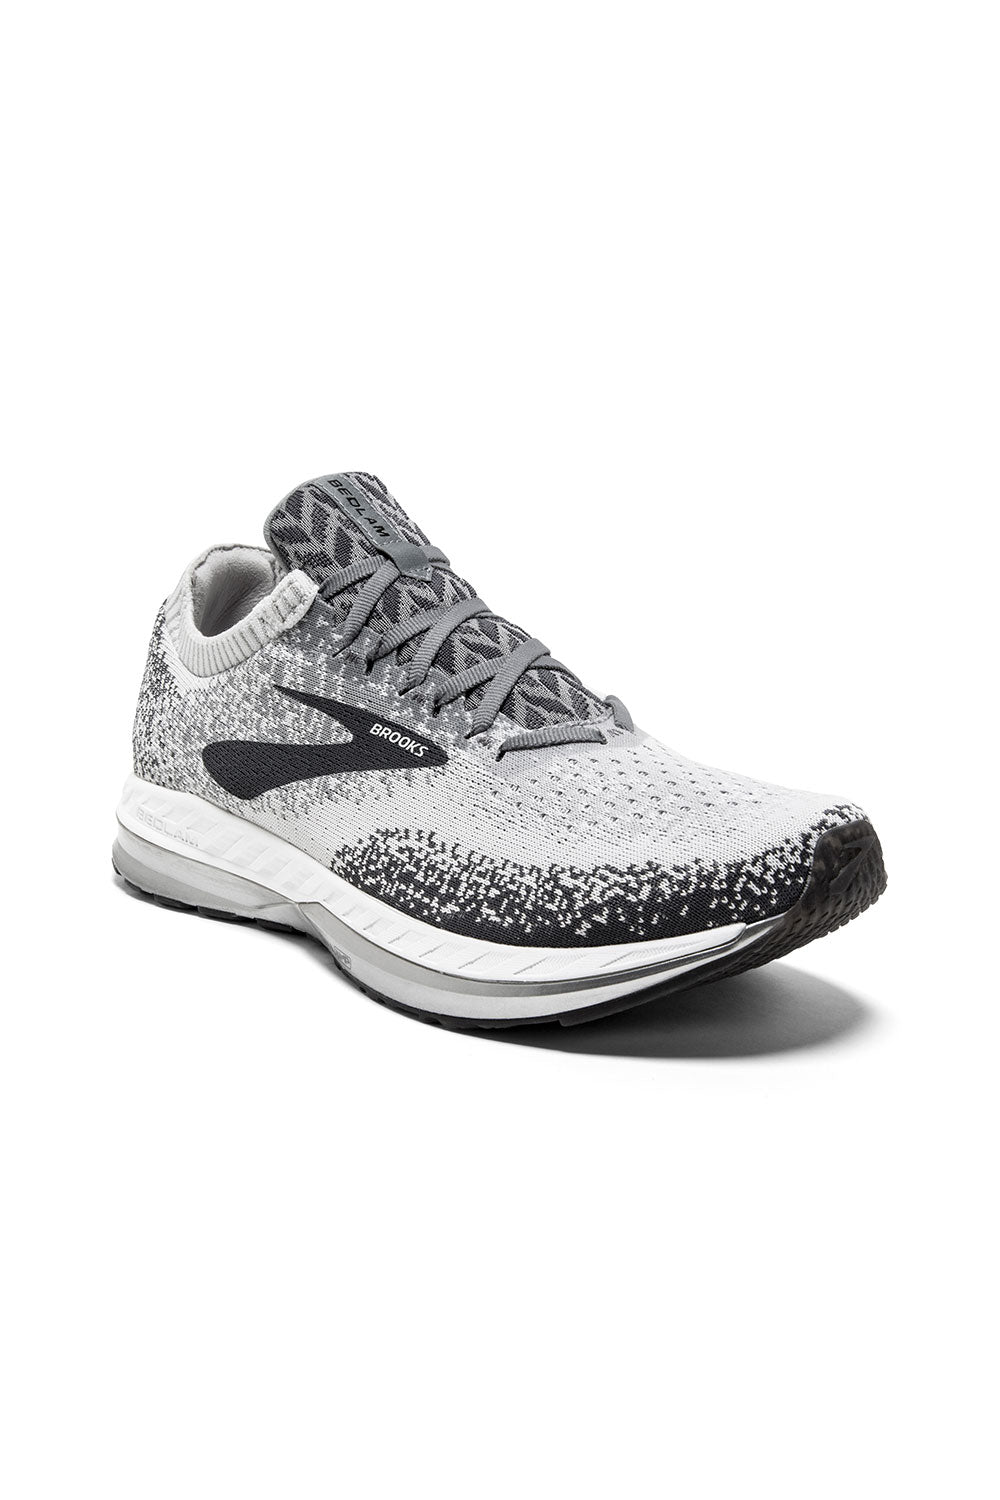 0c378174ab1 Men s Bedlam Running Shoe - Grey White Ebony – Gazelle Sports